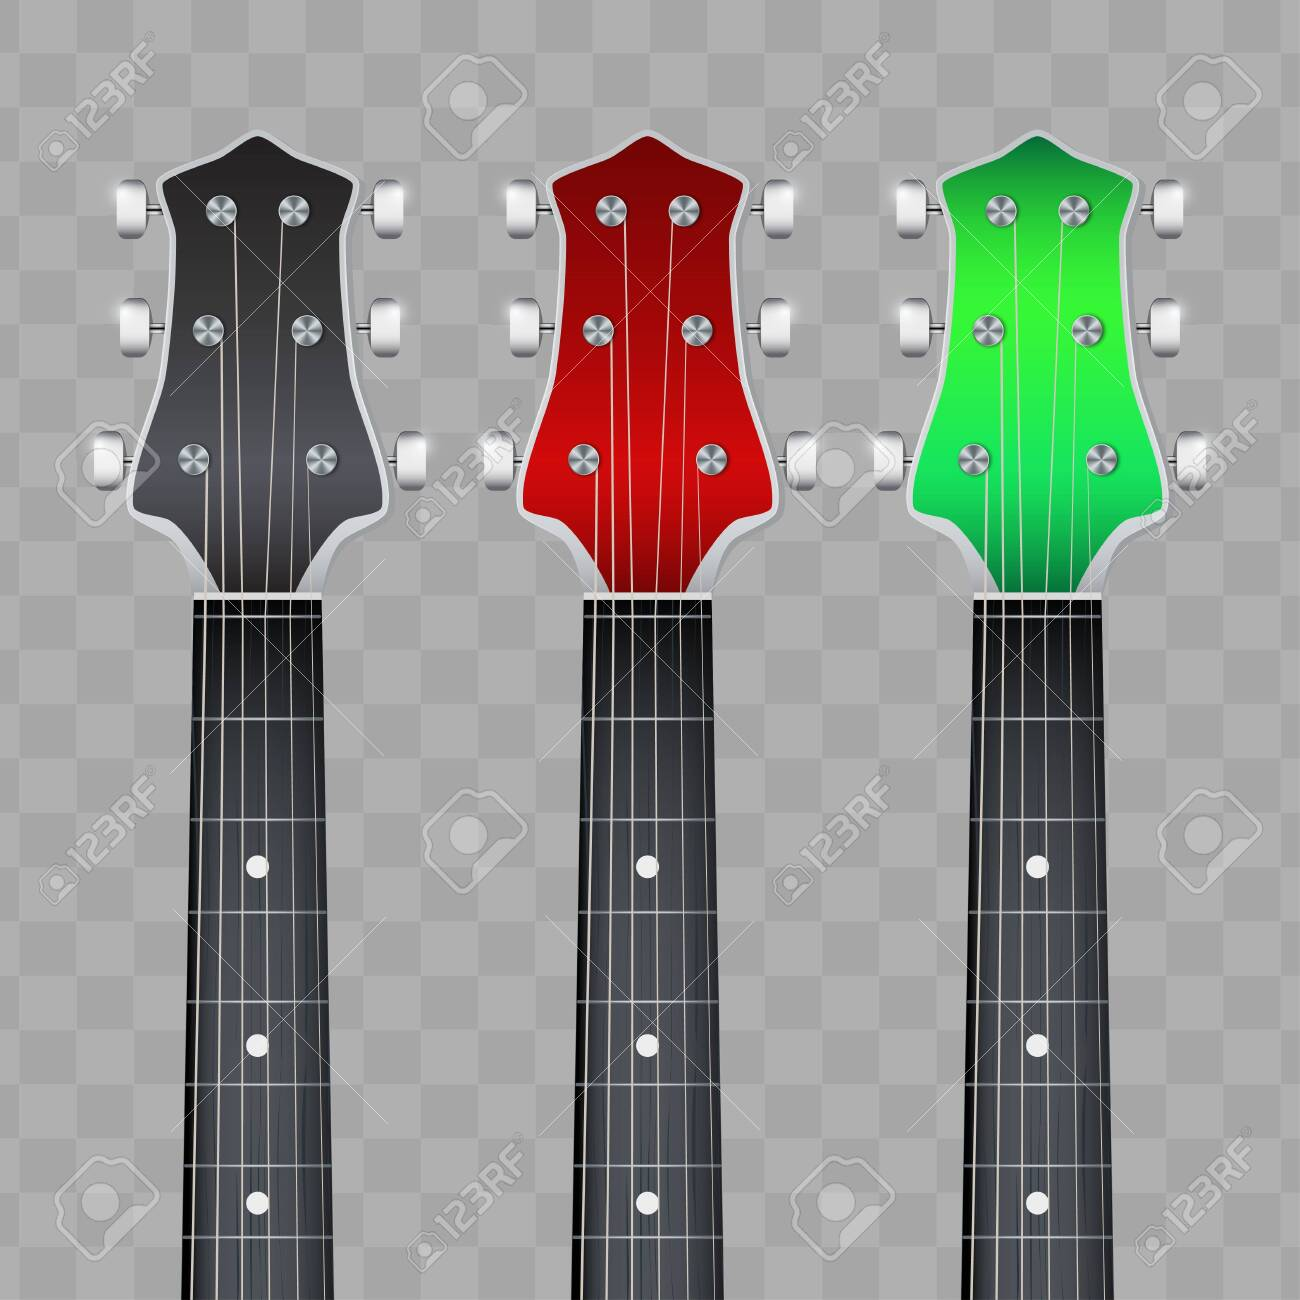 Set of Rock Electro Guitars neck fretboard and headstock. Vector Illustration isolated on white background. - 141644616